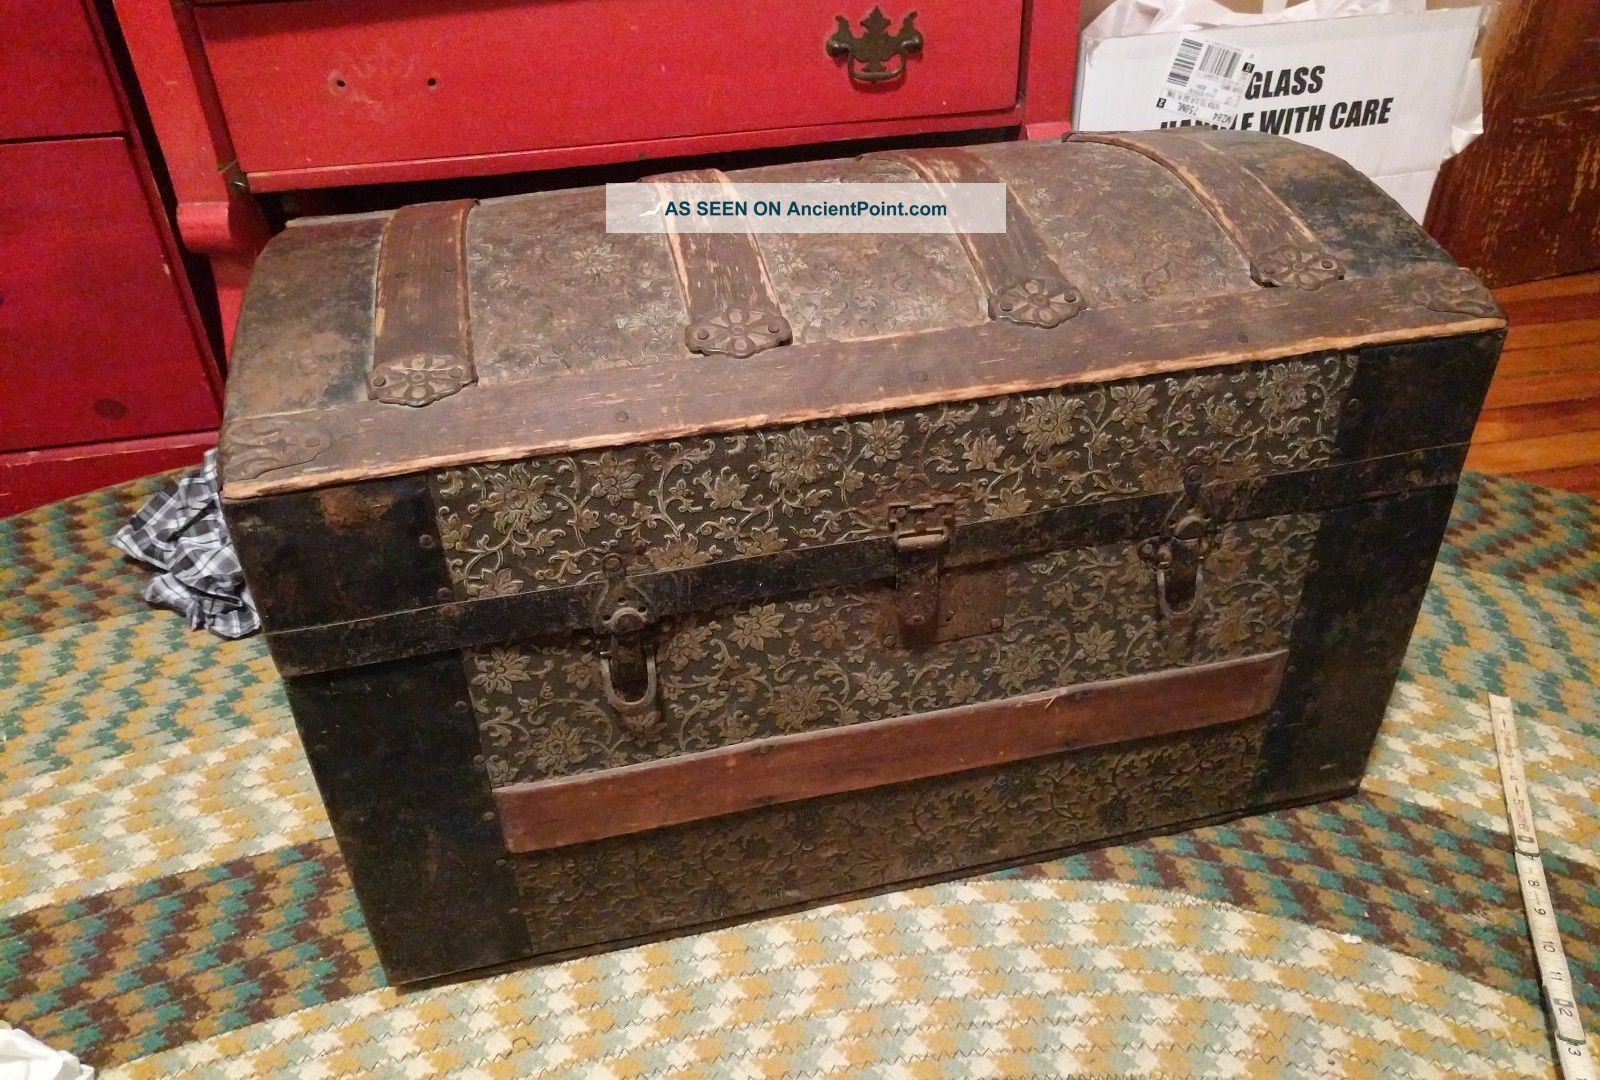 Antique,  Dome Top Tin / Wood Ornate Steamer Trunk (late 1800,  S - Victorian) 1800-1899 photo